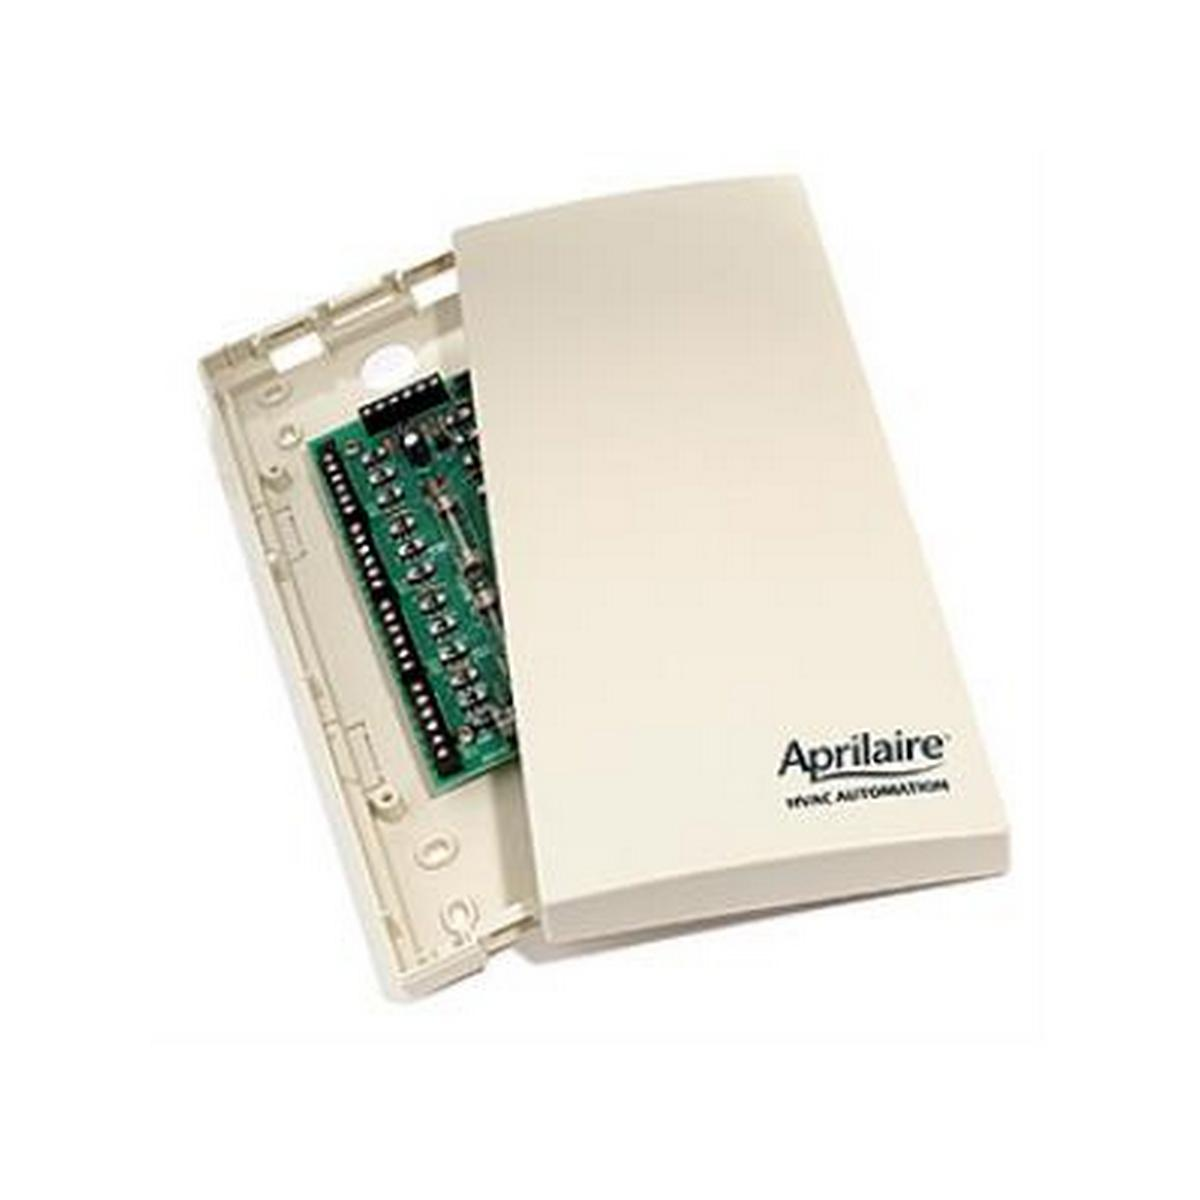 Aprilaire Distribution Panel for use with 8800 Thermostat